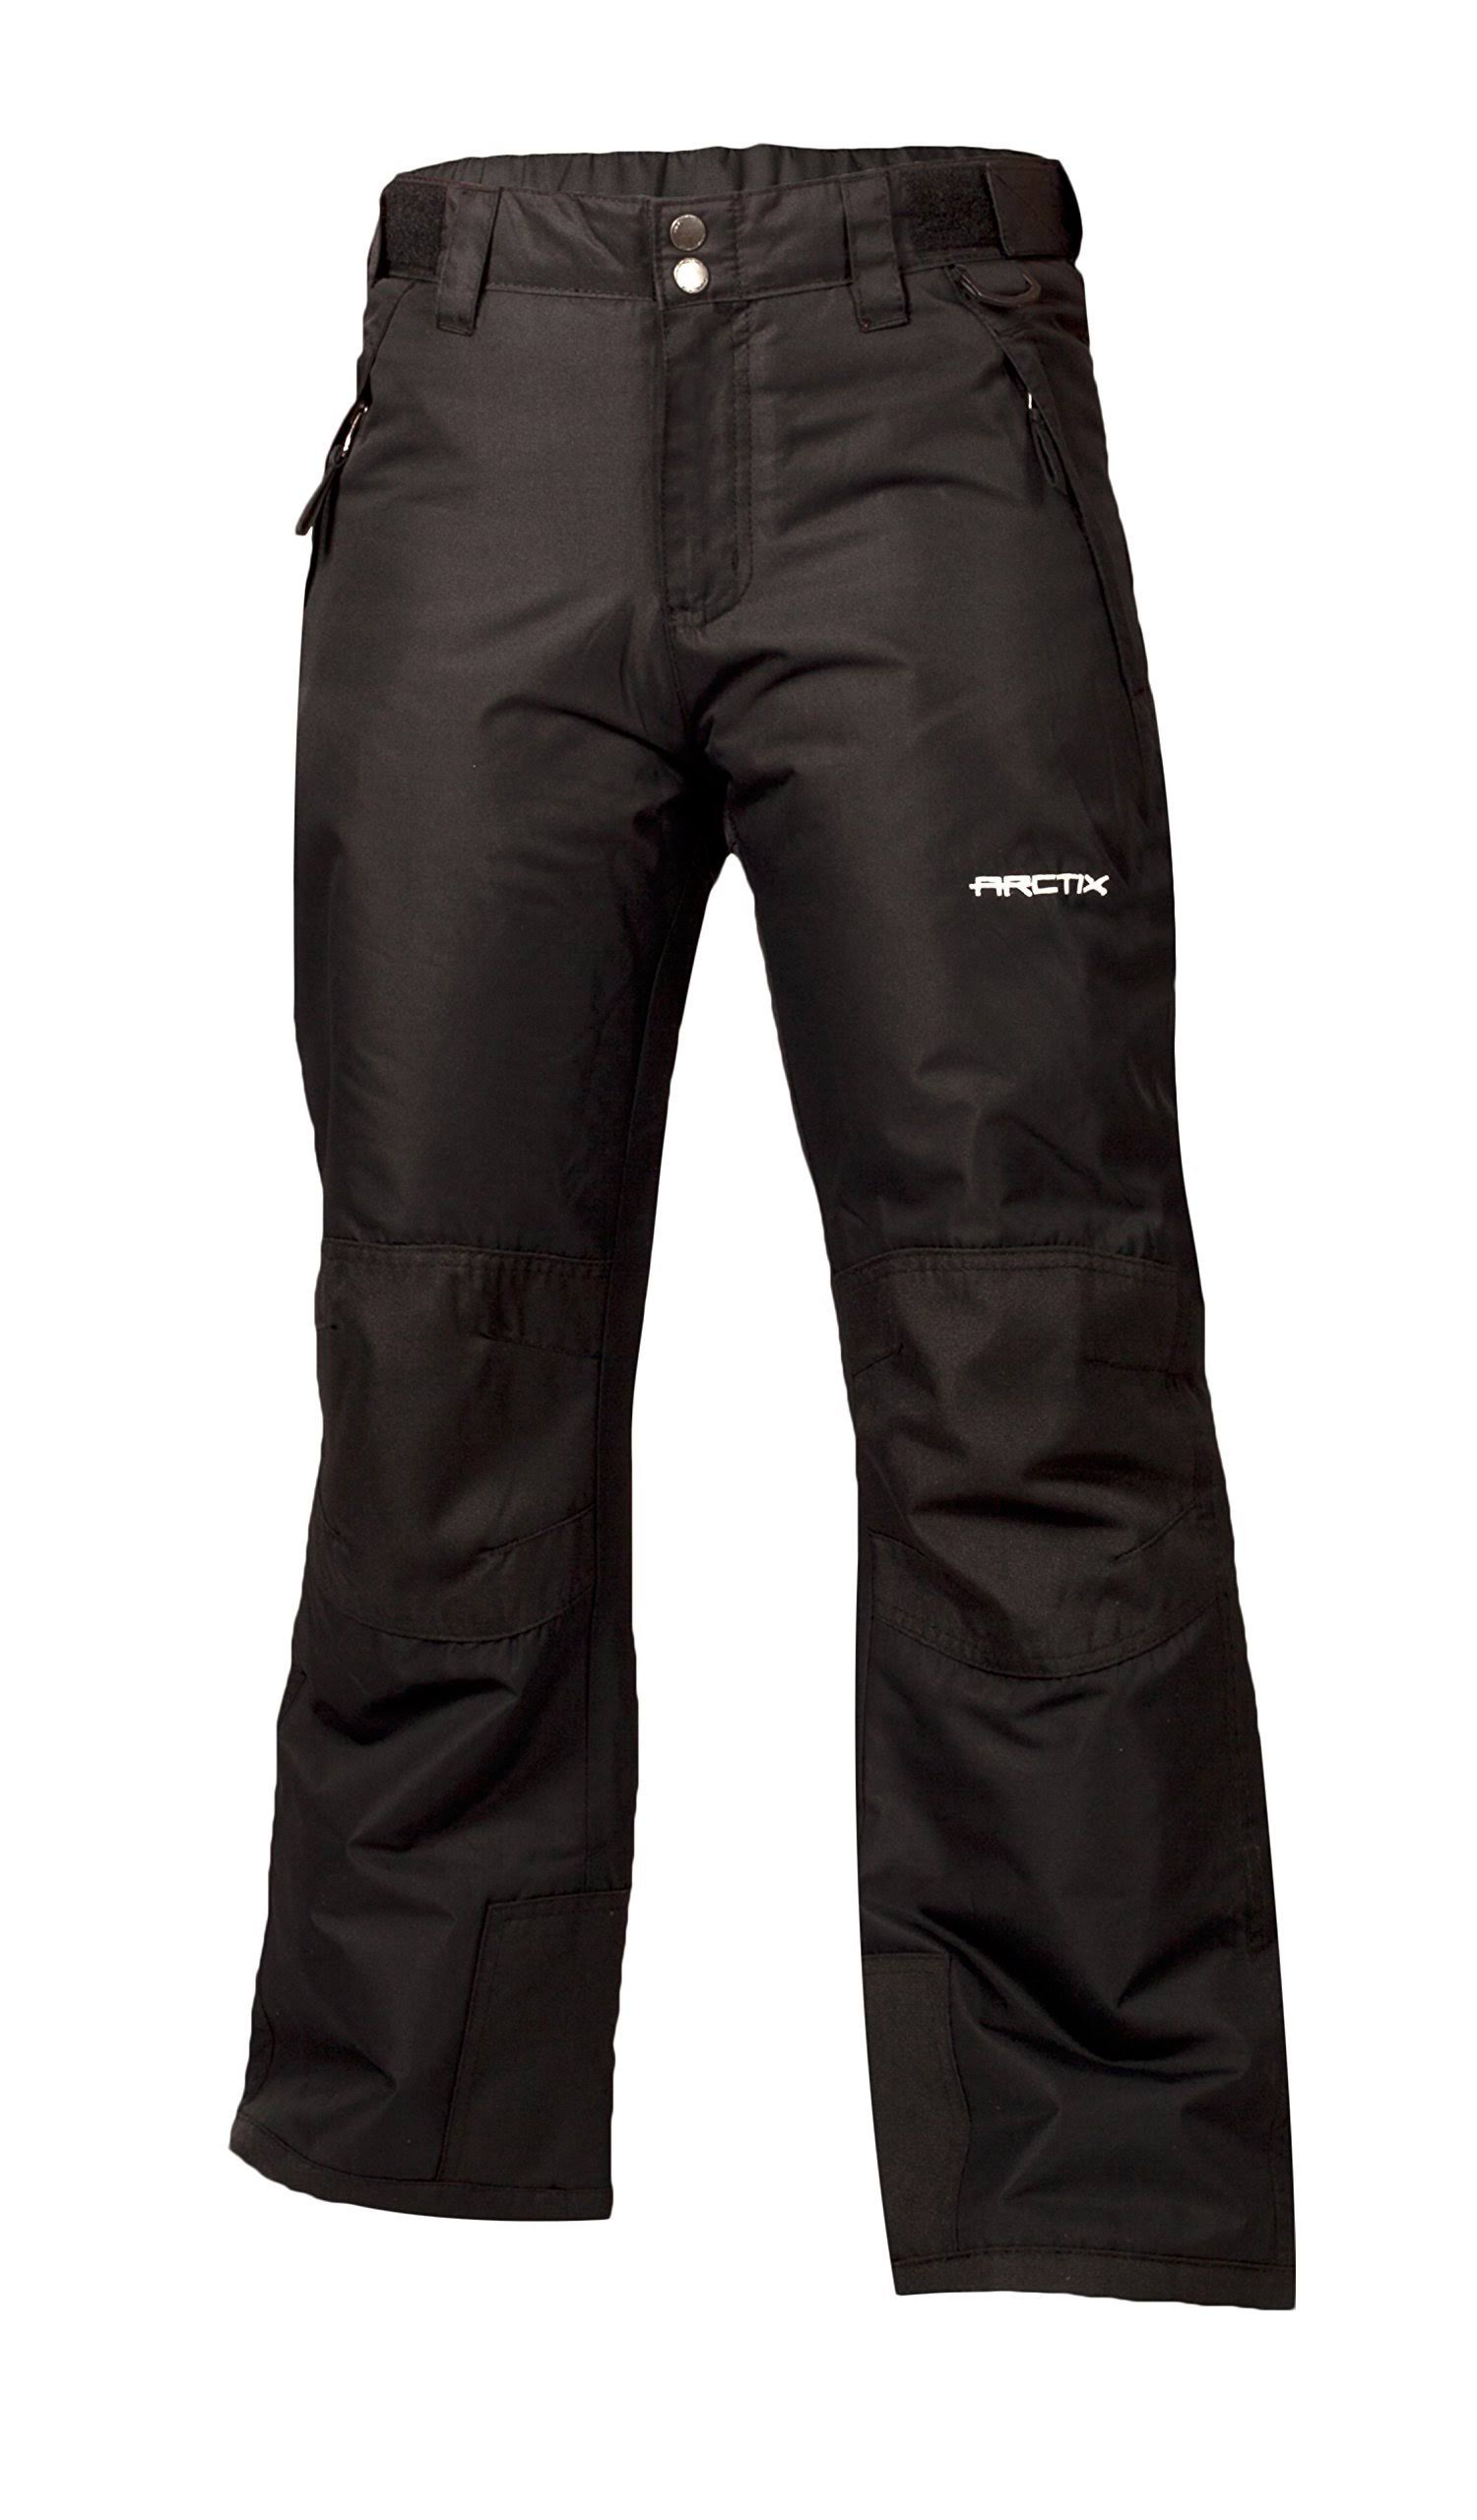 Arctix Youth Reinforced Snow Pants Insulated - Black